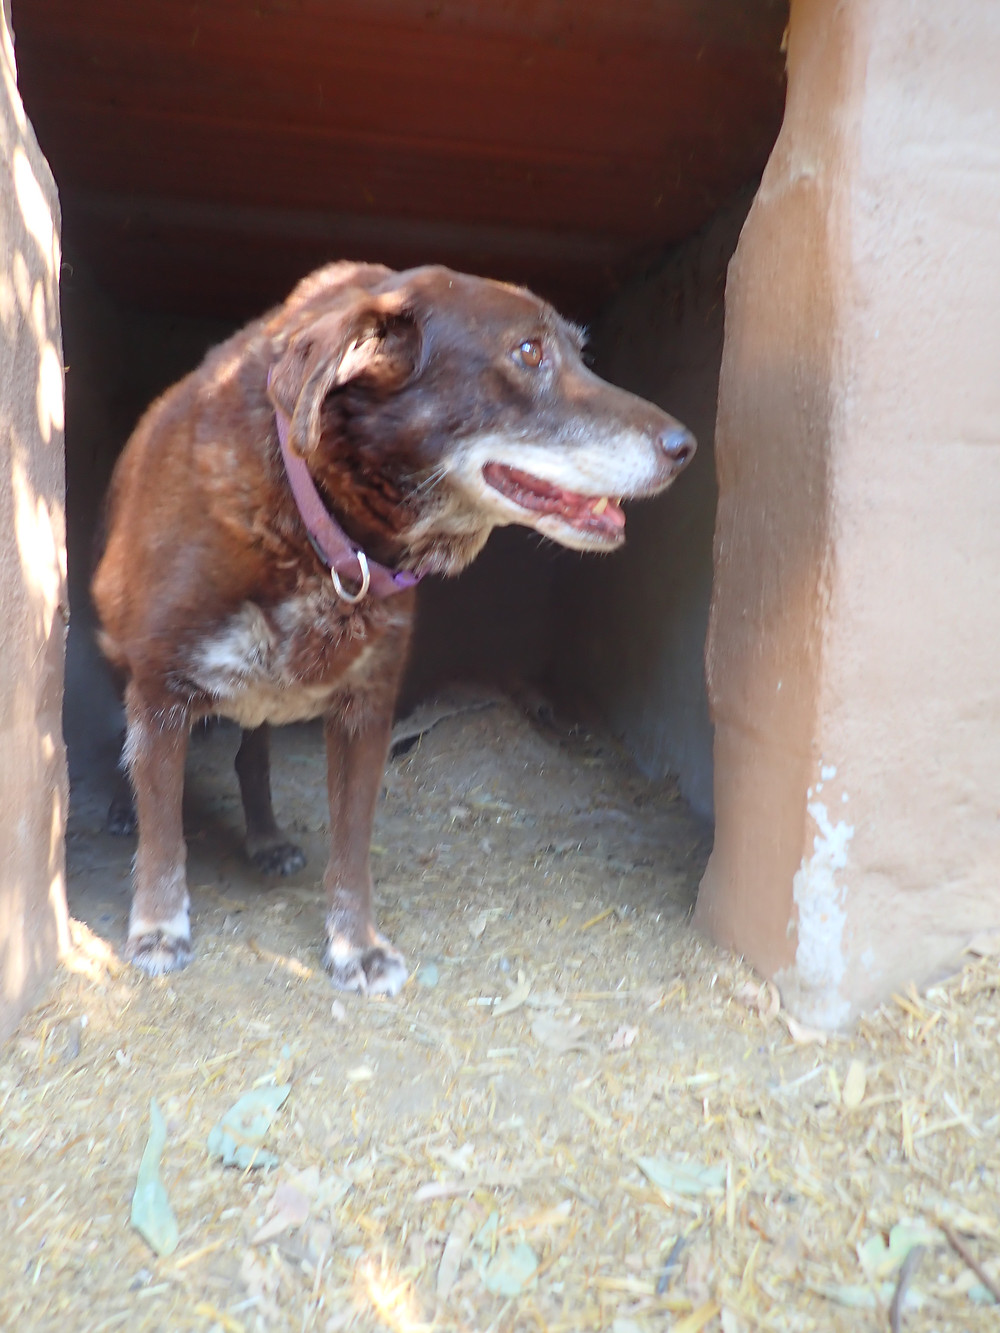 A brown dog in her kennel doorway